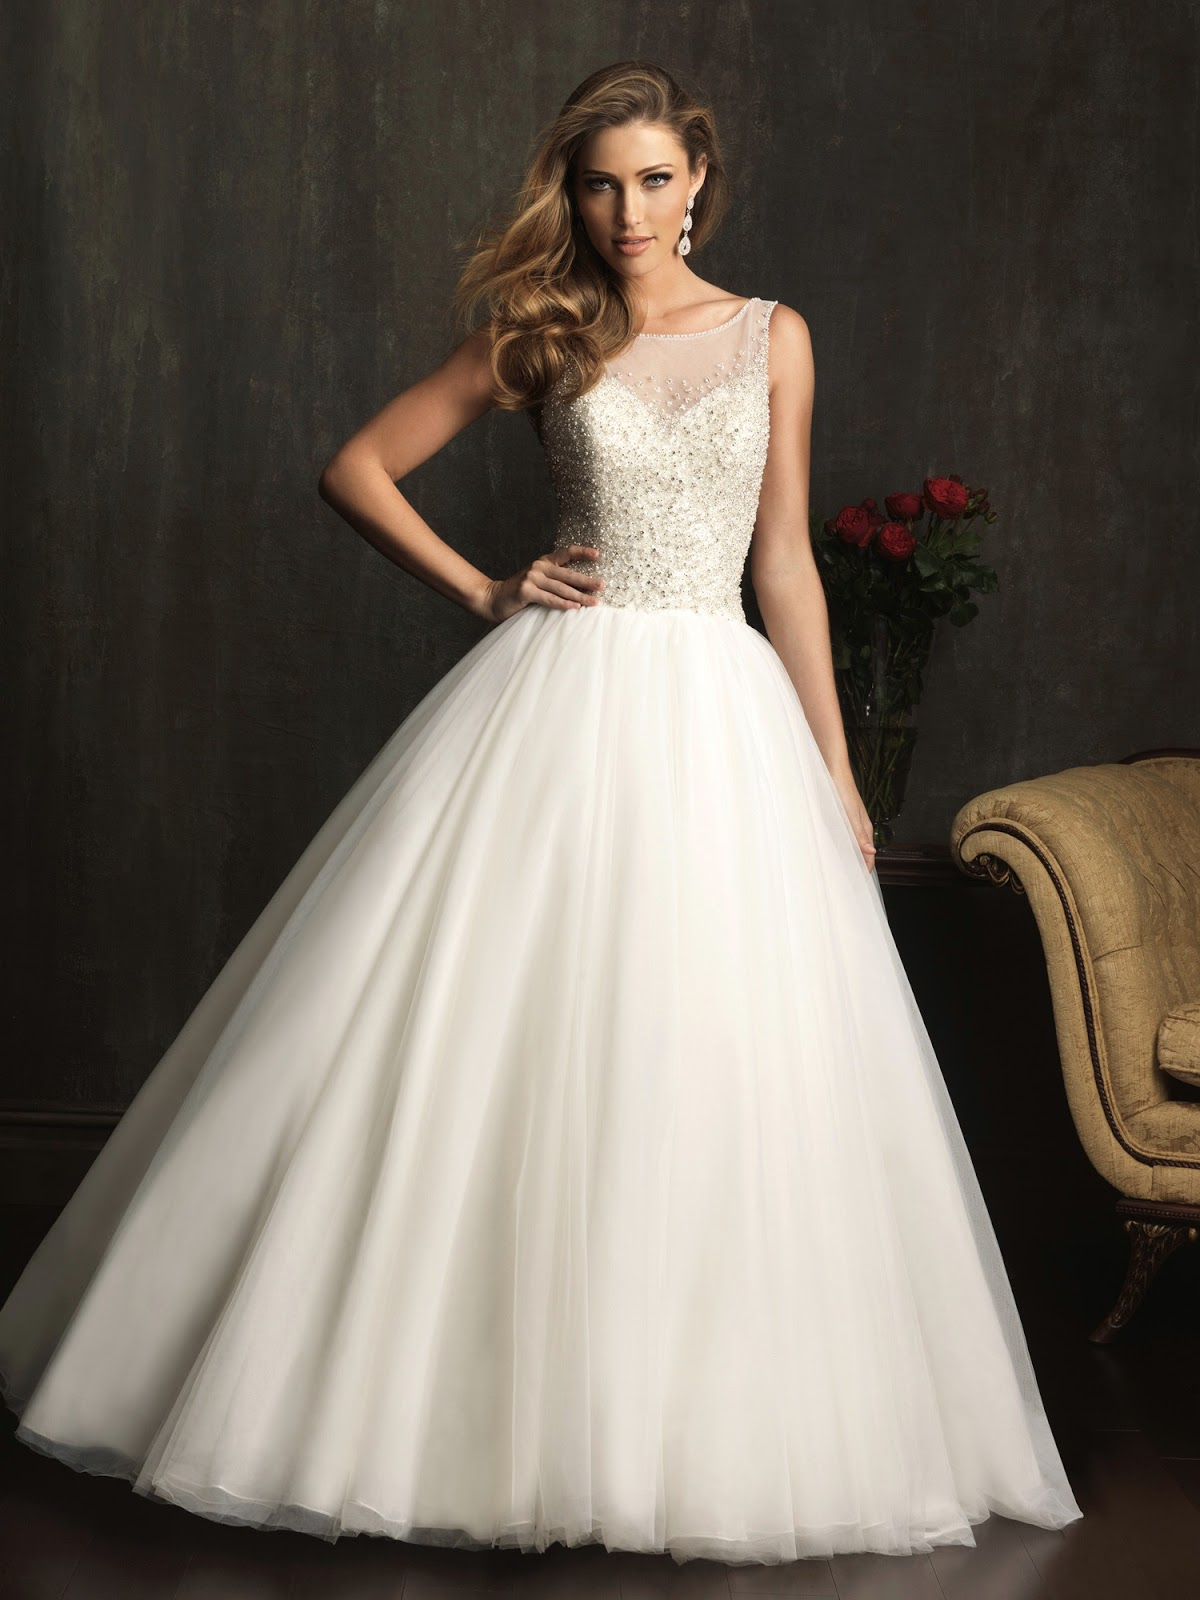 Bride Gowns Dressybridal Allure Wedding Dresses Fall 2013 Collection